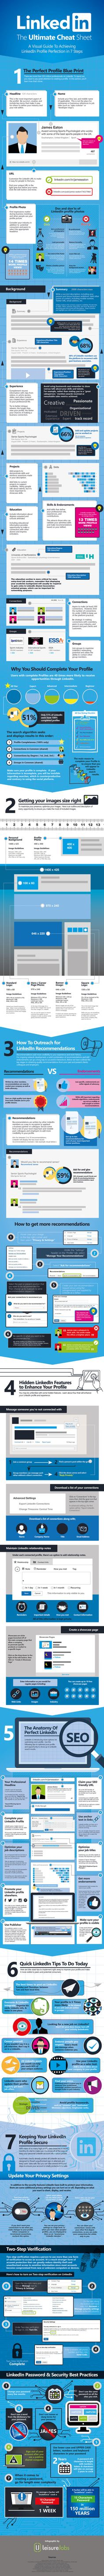 Personal Branding on LinkedIn: 7 Steps to LinkedIn Profile Perfection #Infographic